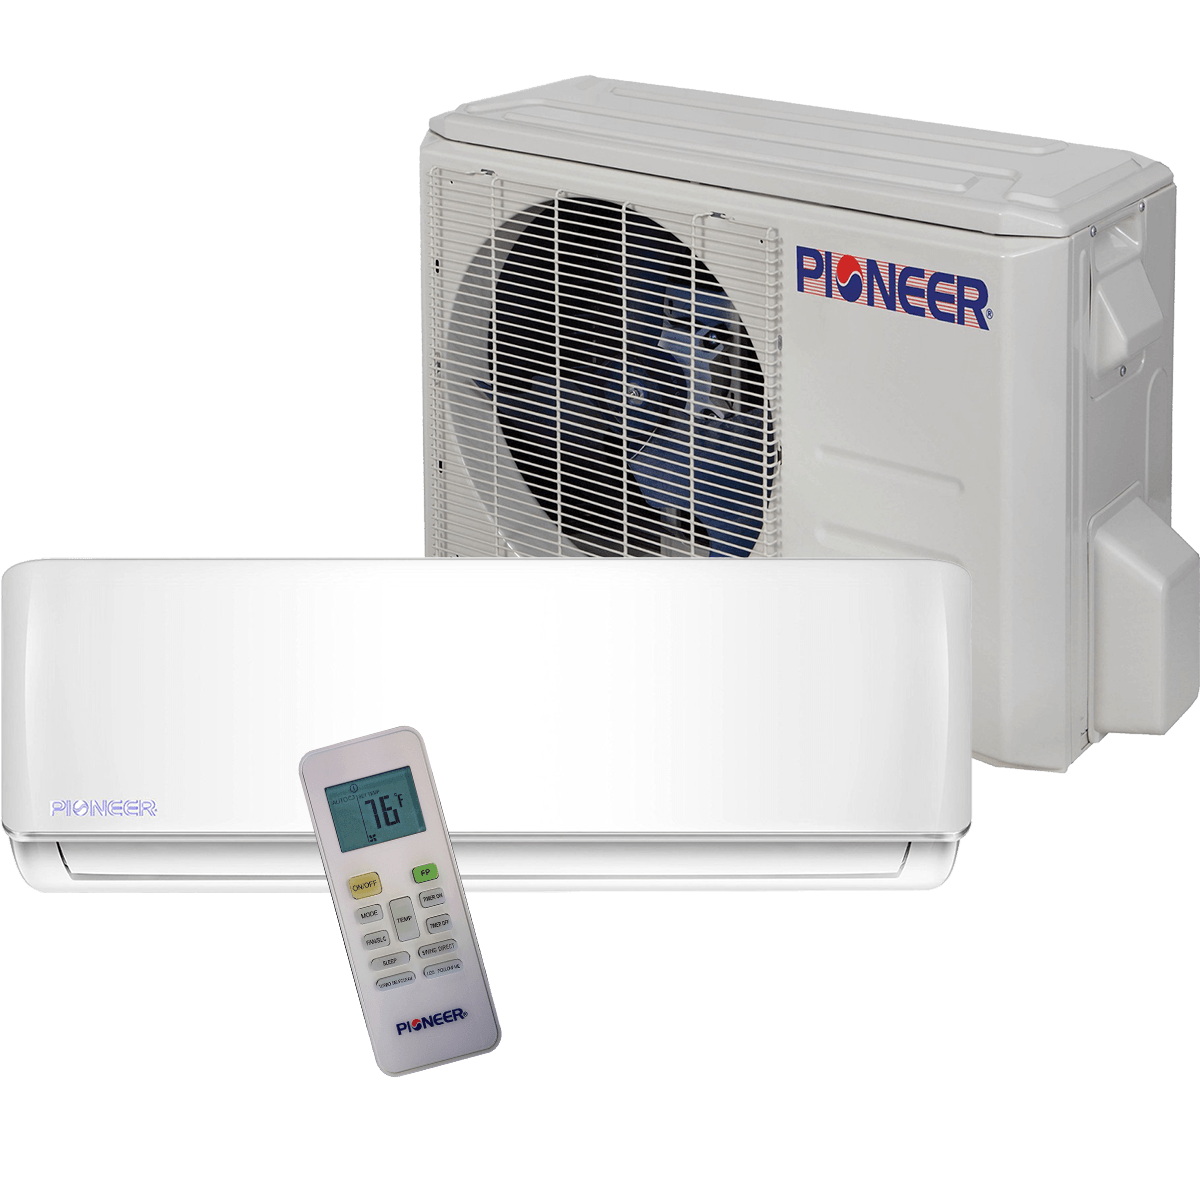 This Pioneer Unit Provides 12 000 Btus Of Heating And Cooling